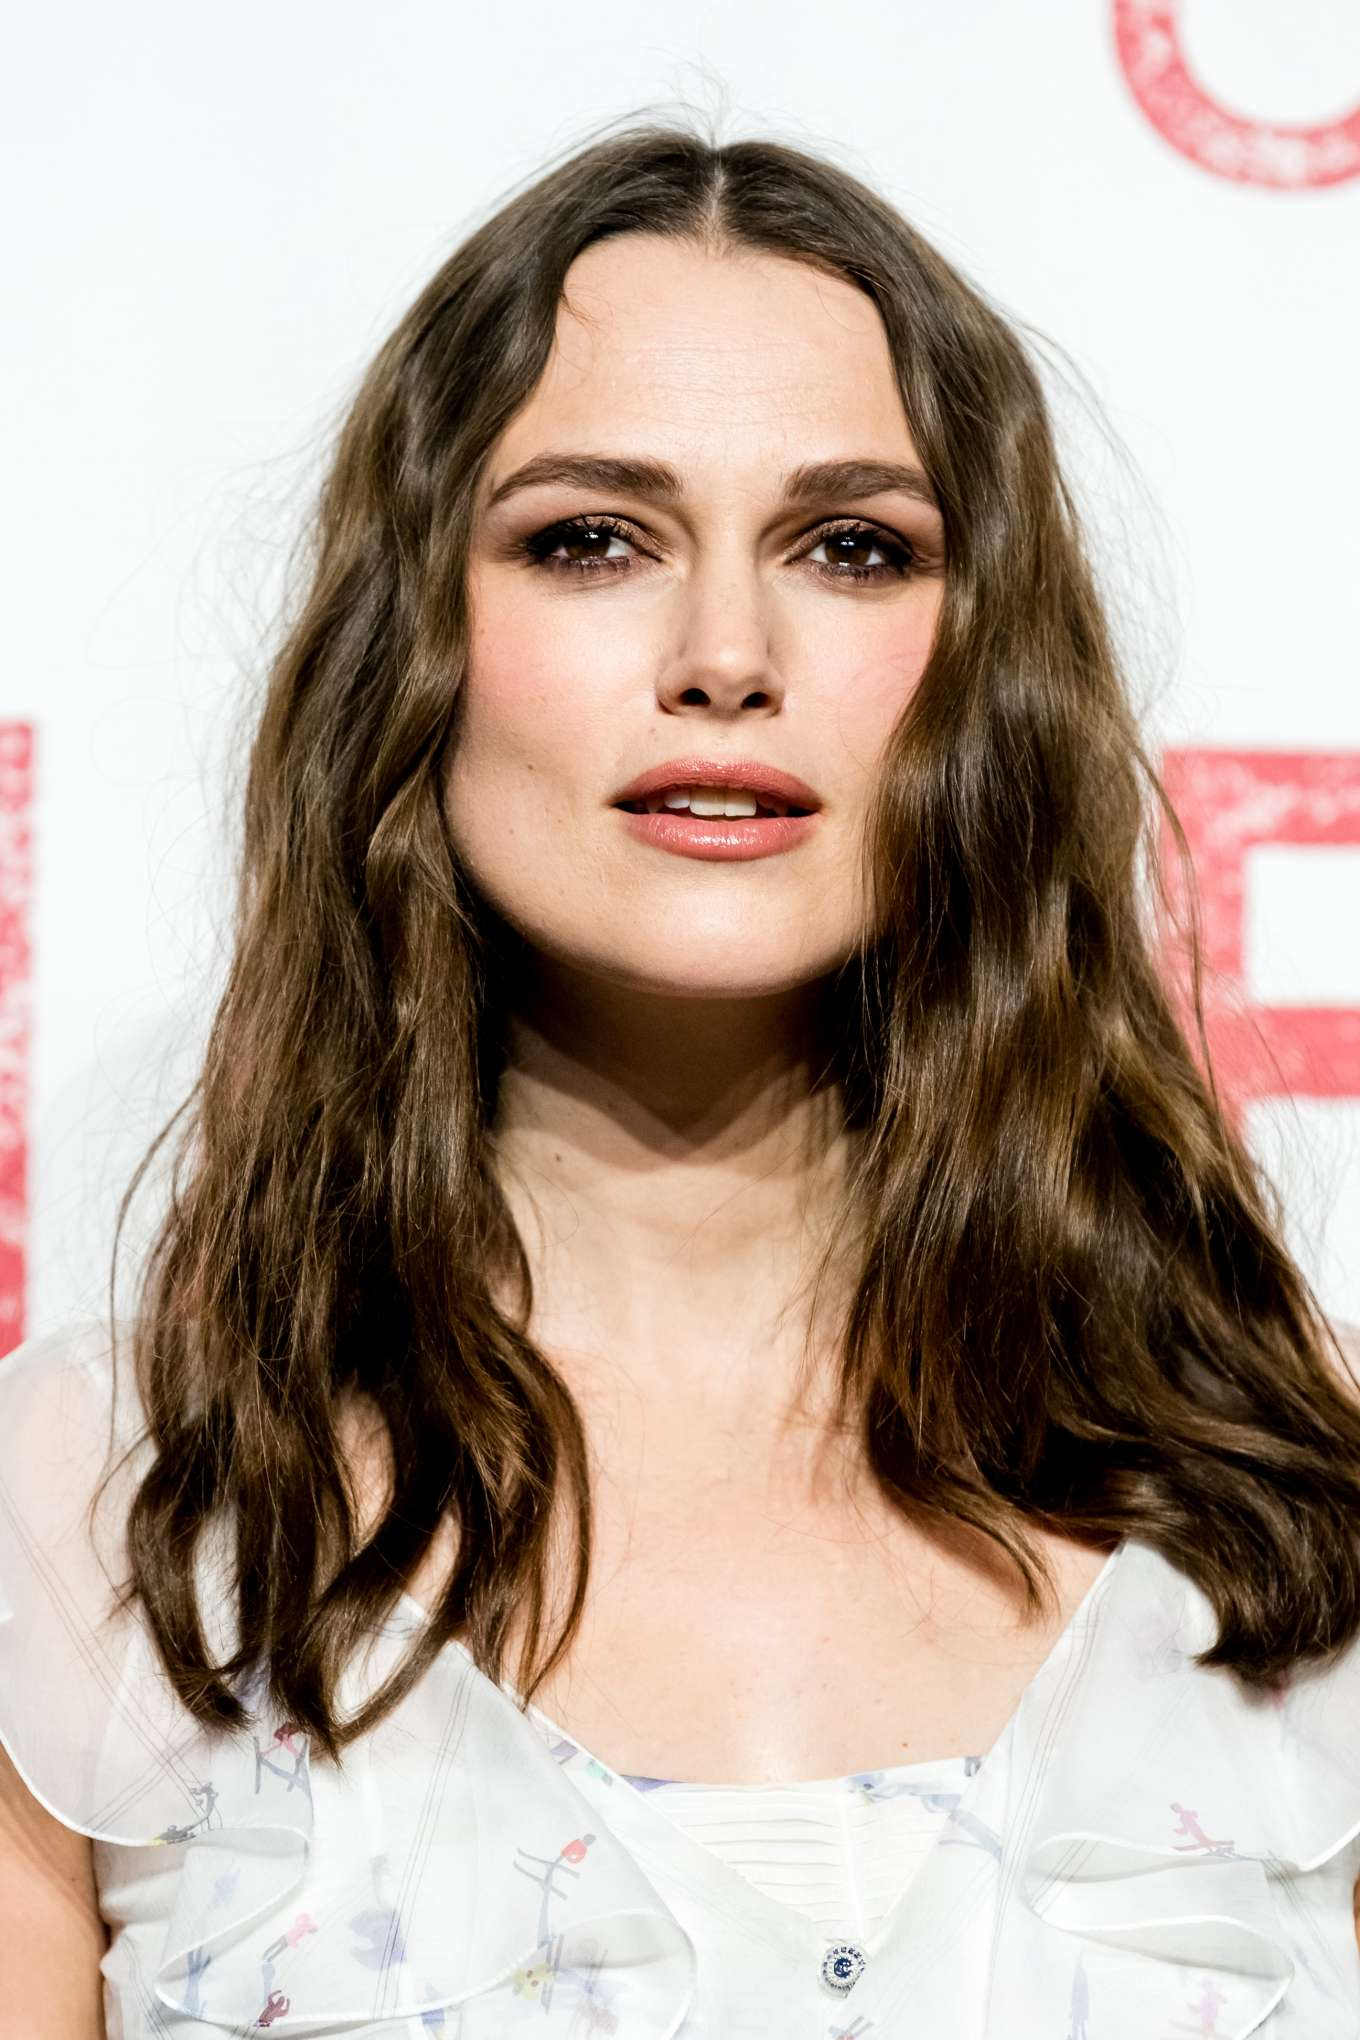 Keira Knightley 2019 : Keira Knightley: Arrives for the Chanel Mademoiselle Prive exhibition -02